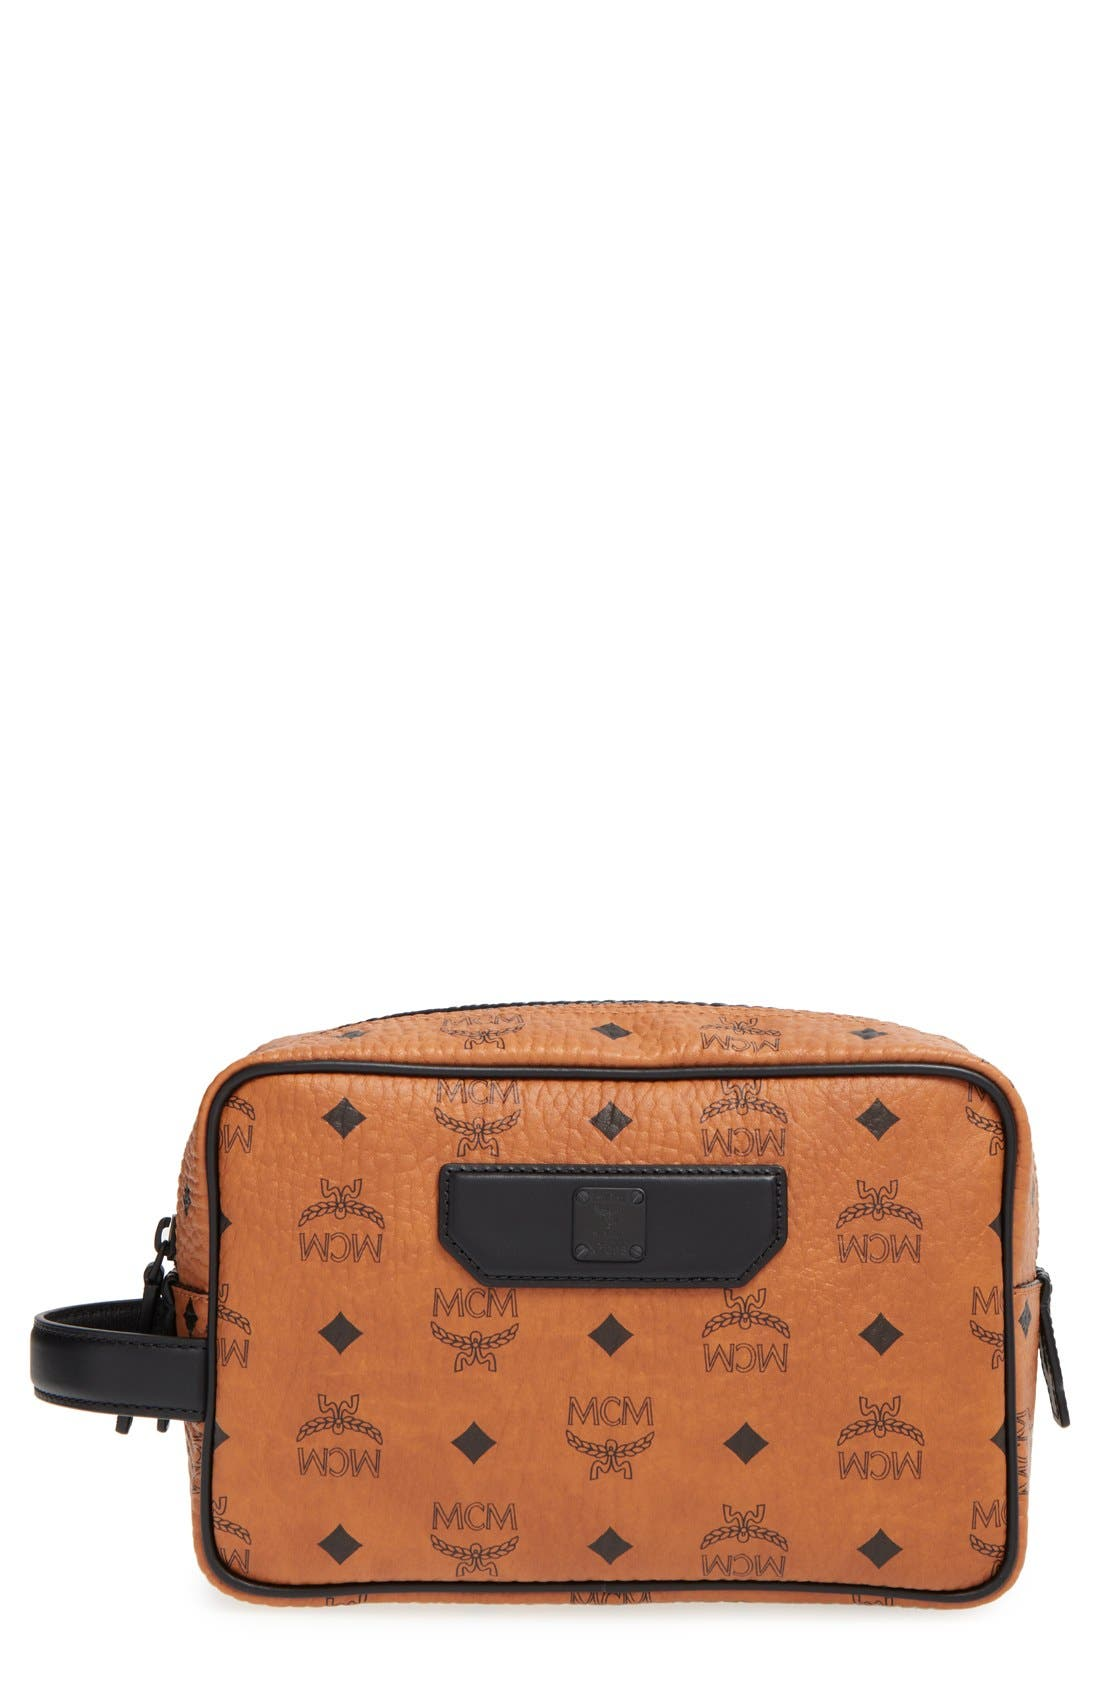 Main Image - MCM 'Nomad - Visetos' Coated Canvas Cosmetics Case